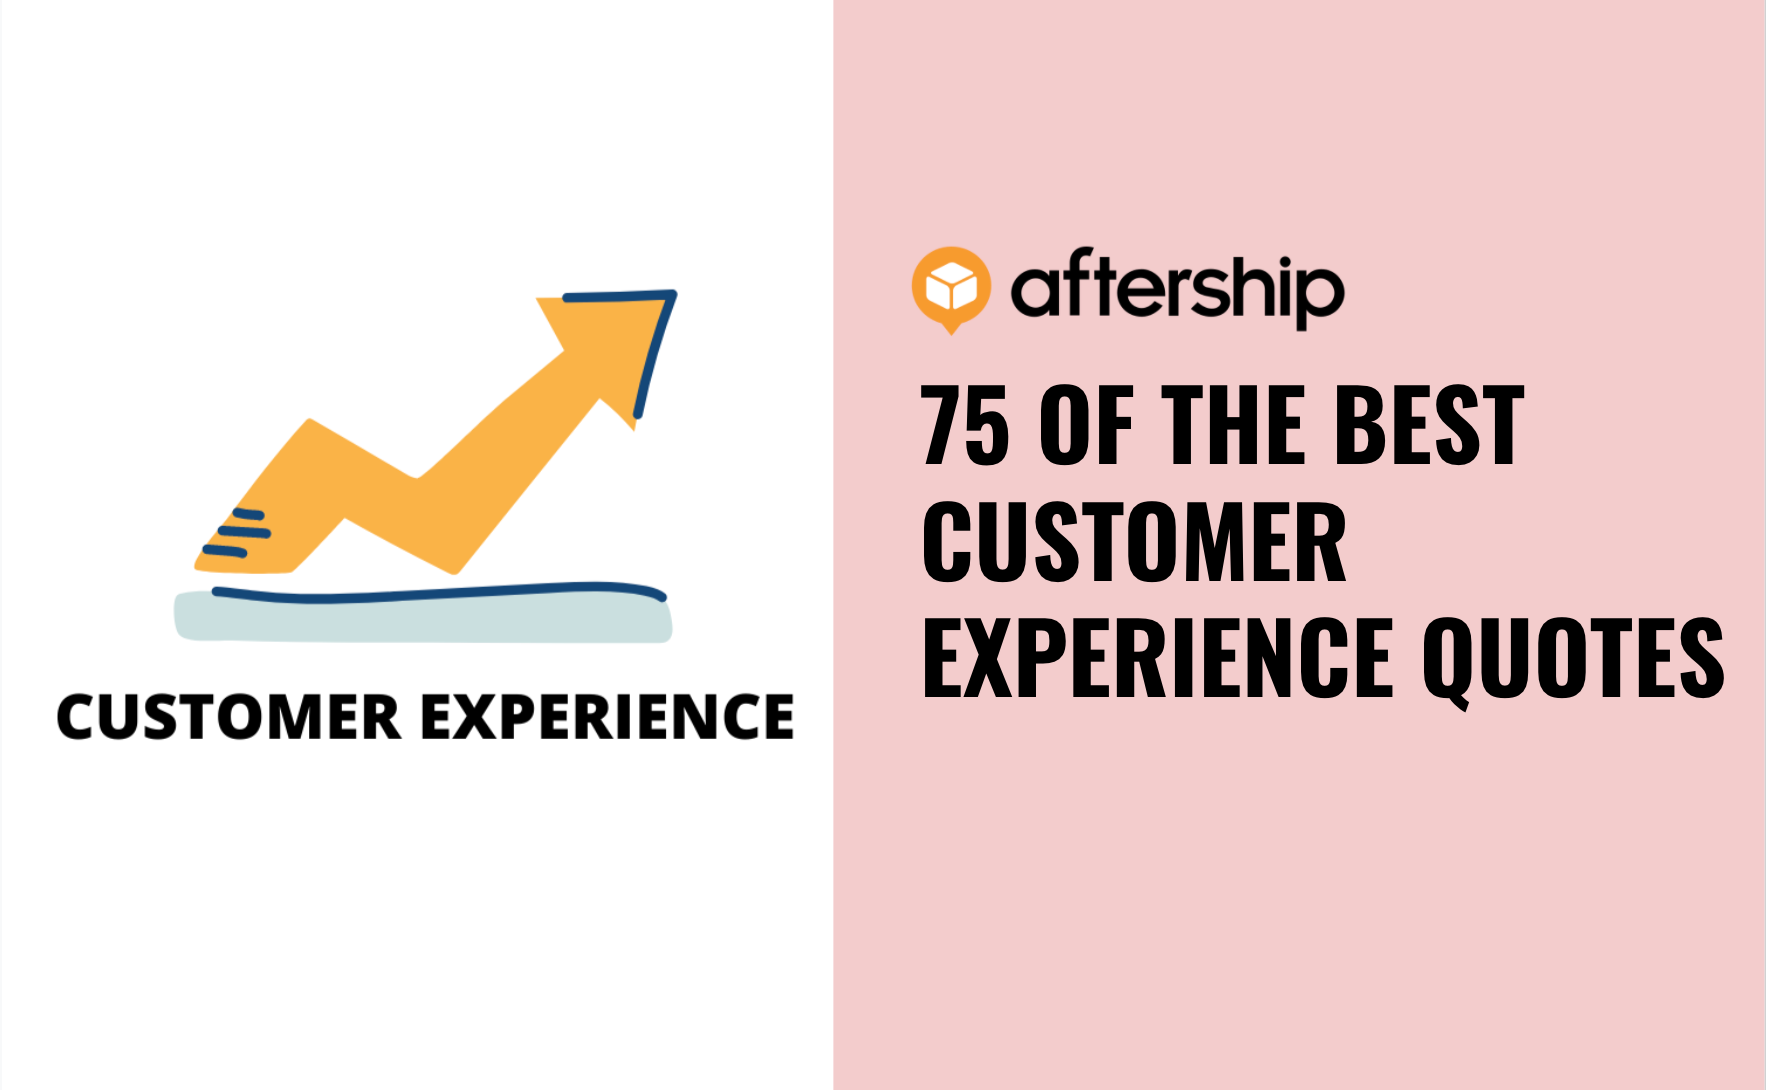 75 Customer Experience Quotes to Supercharge Your Business in 2021